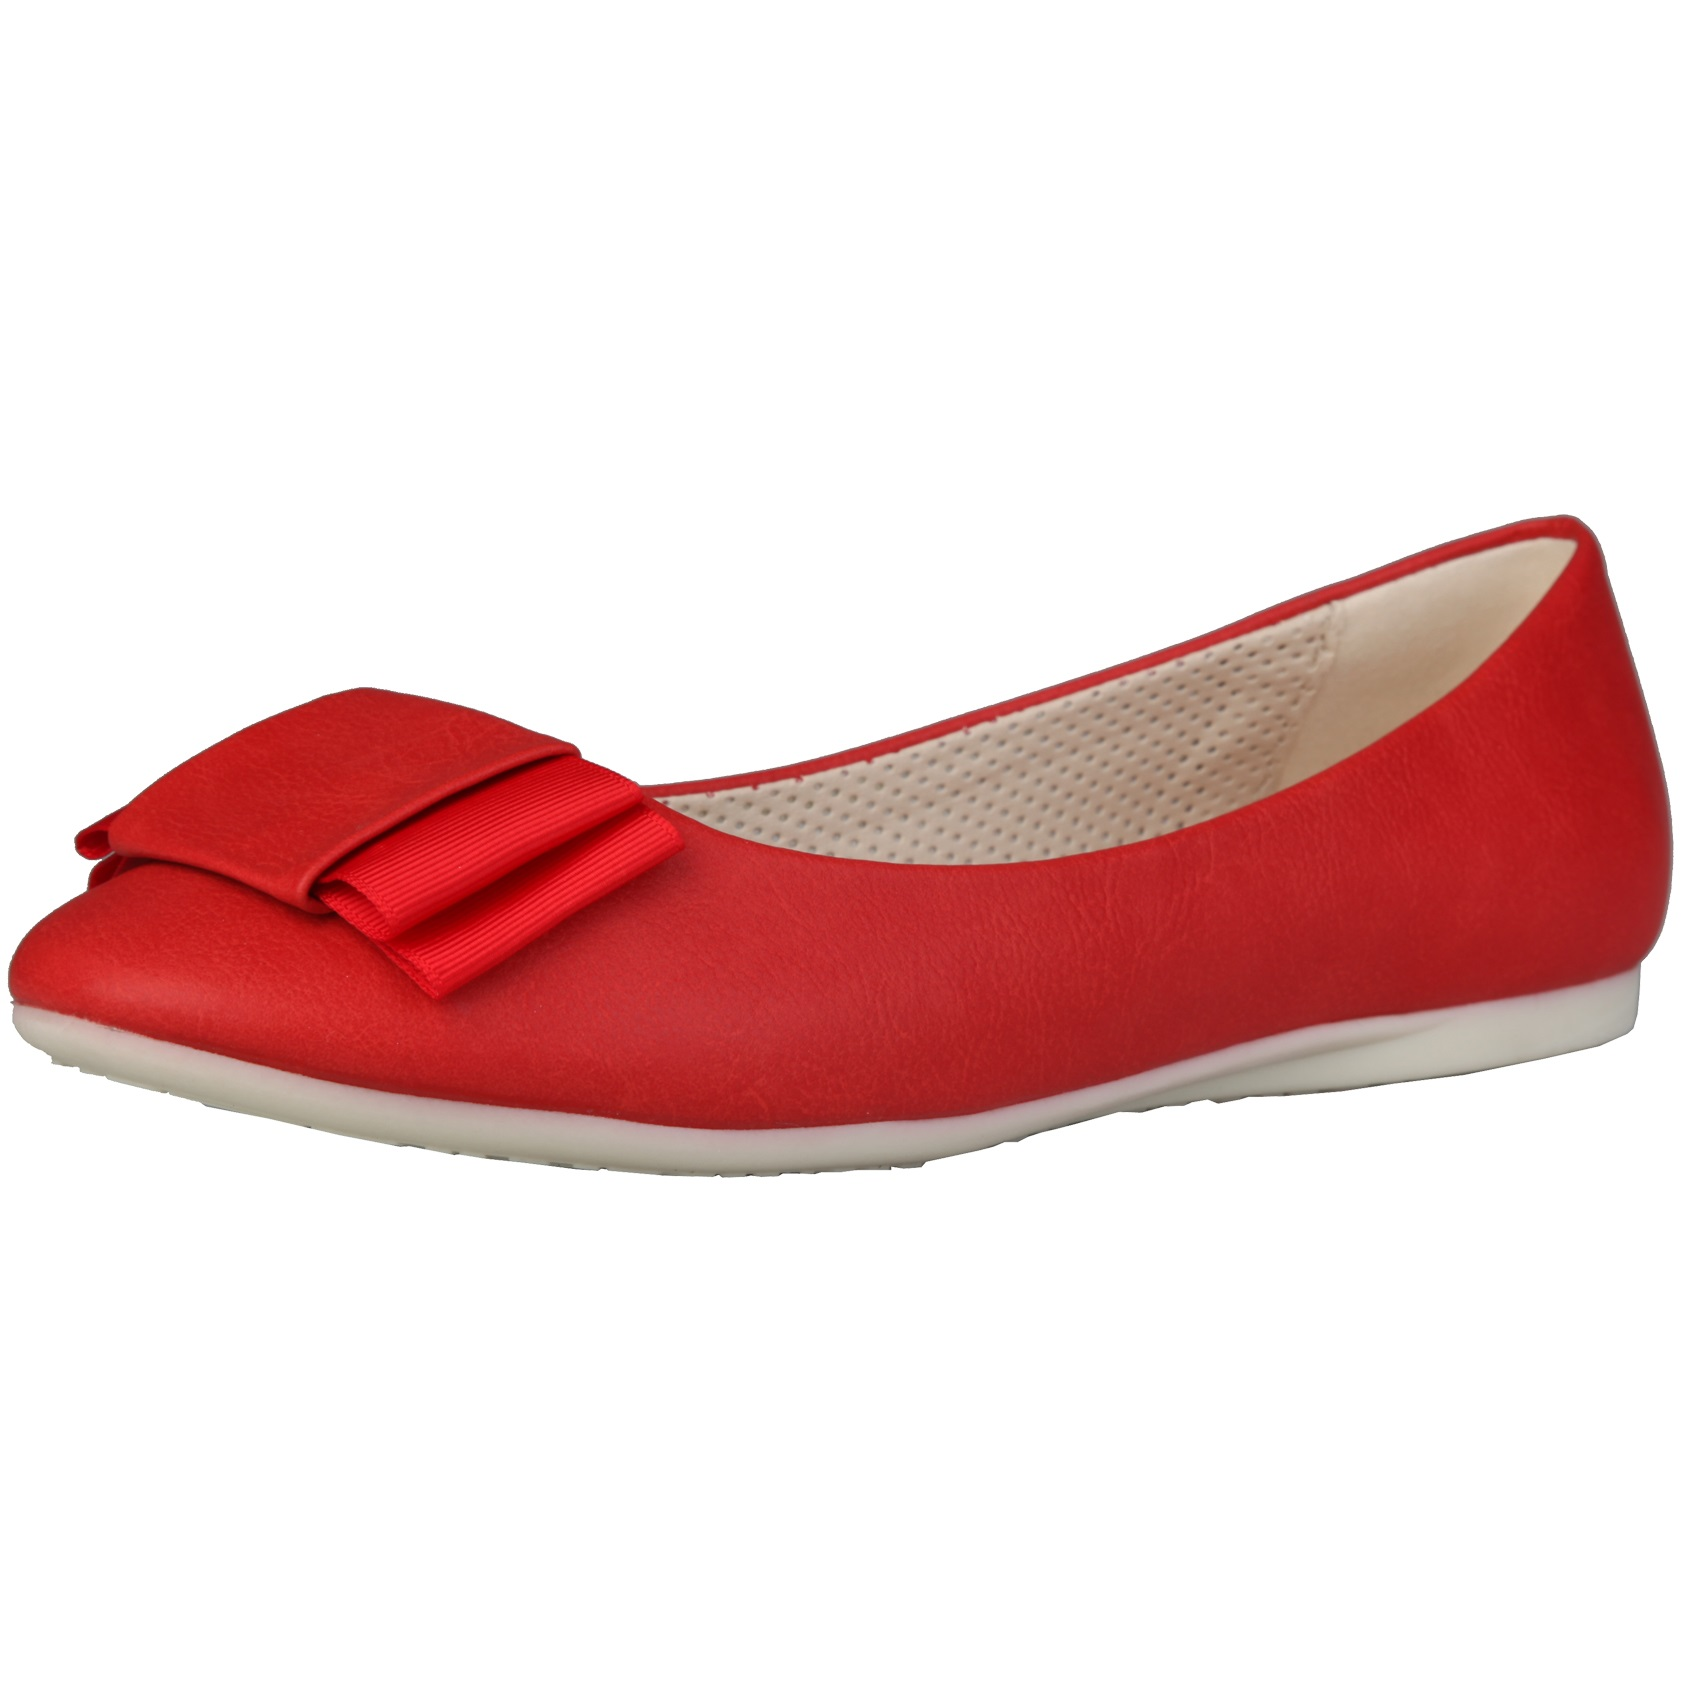 Sofia Loes Flat Shoes Fiocco Rosso Rf600155